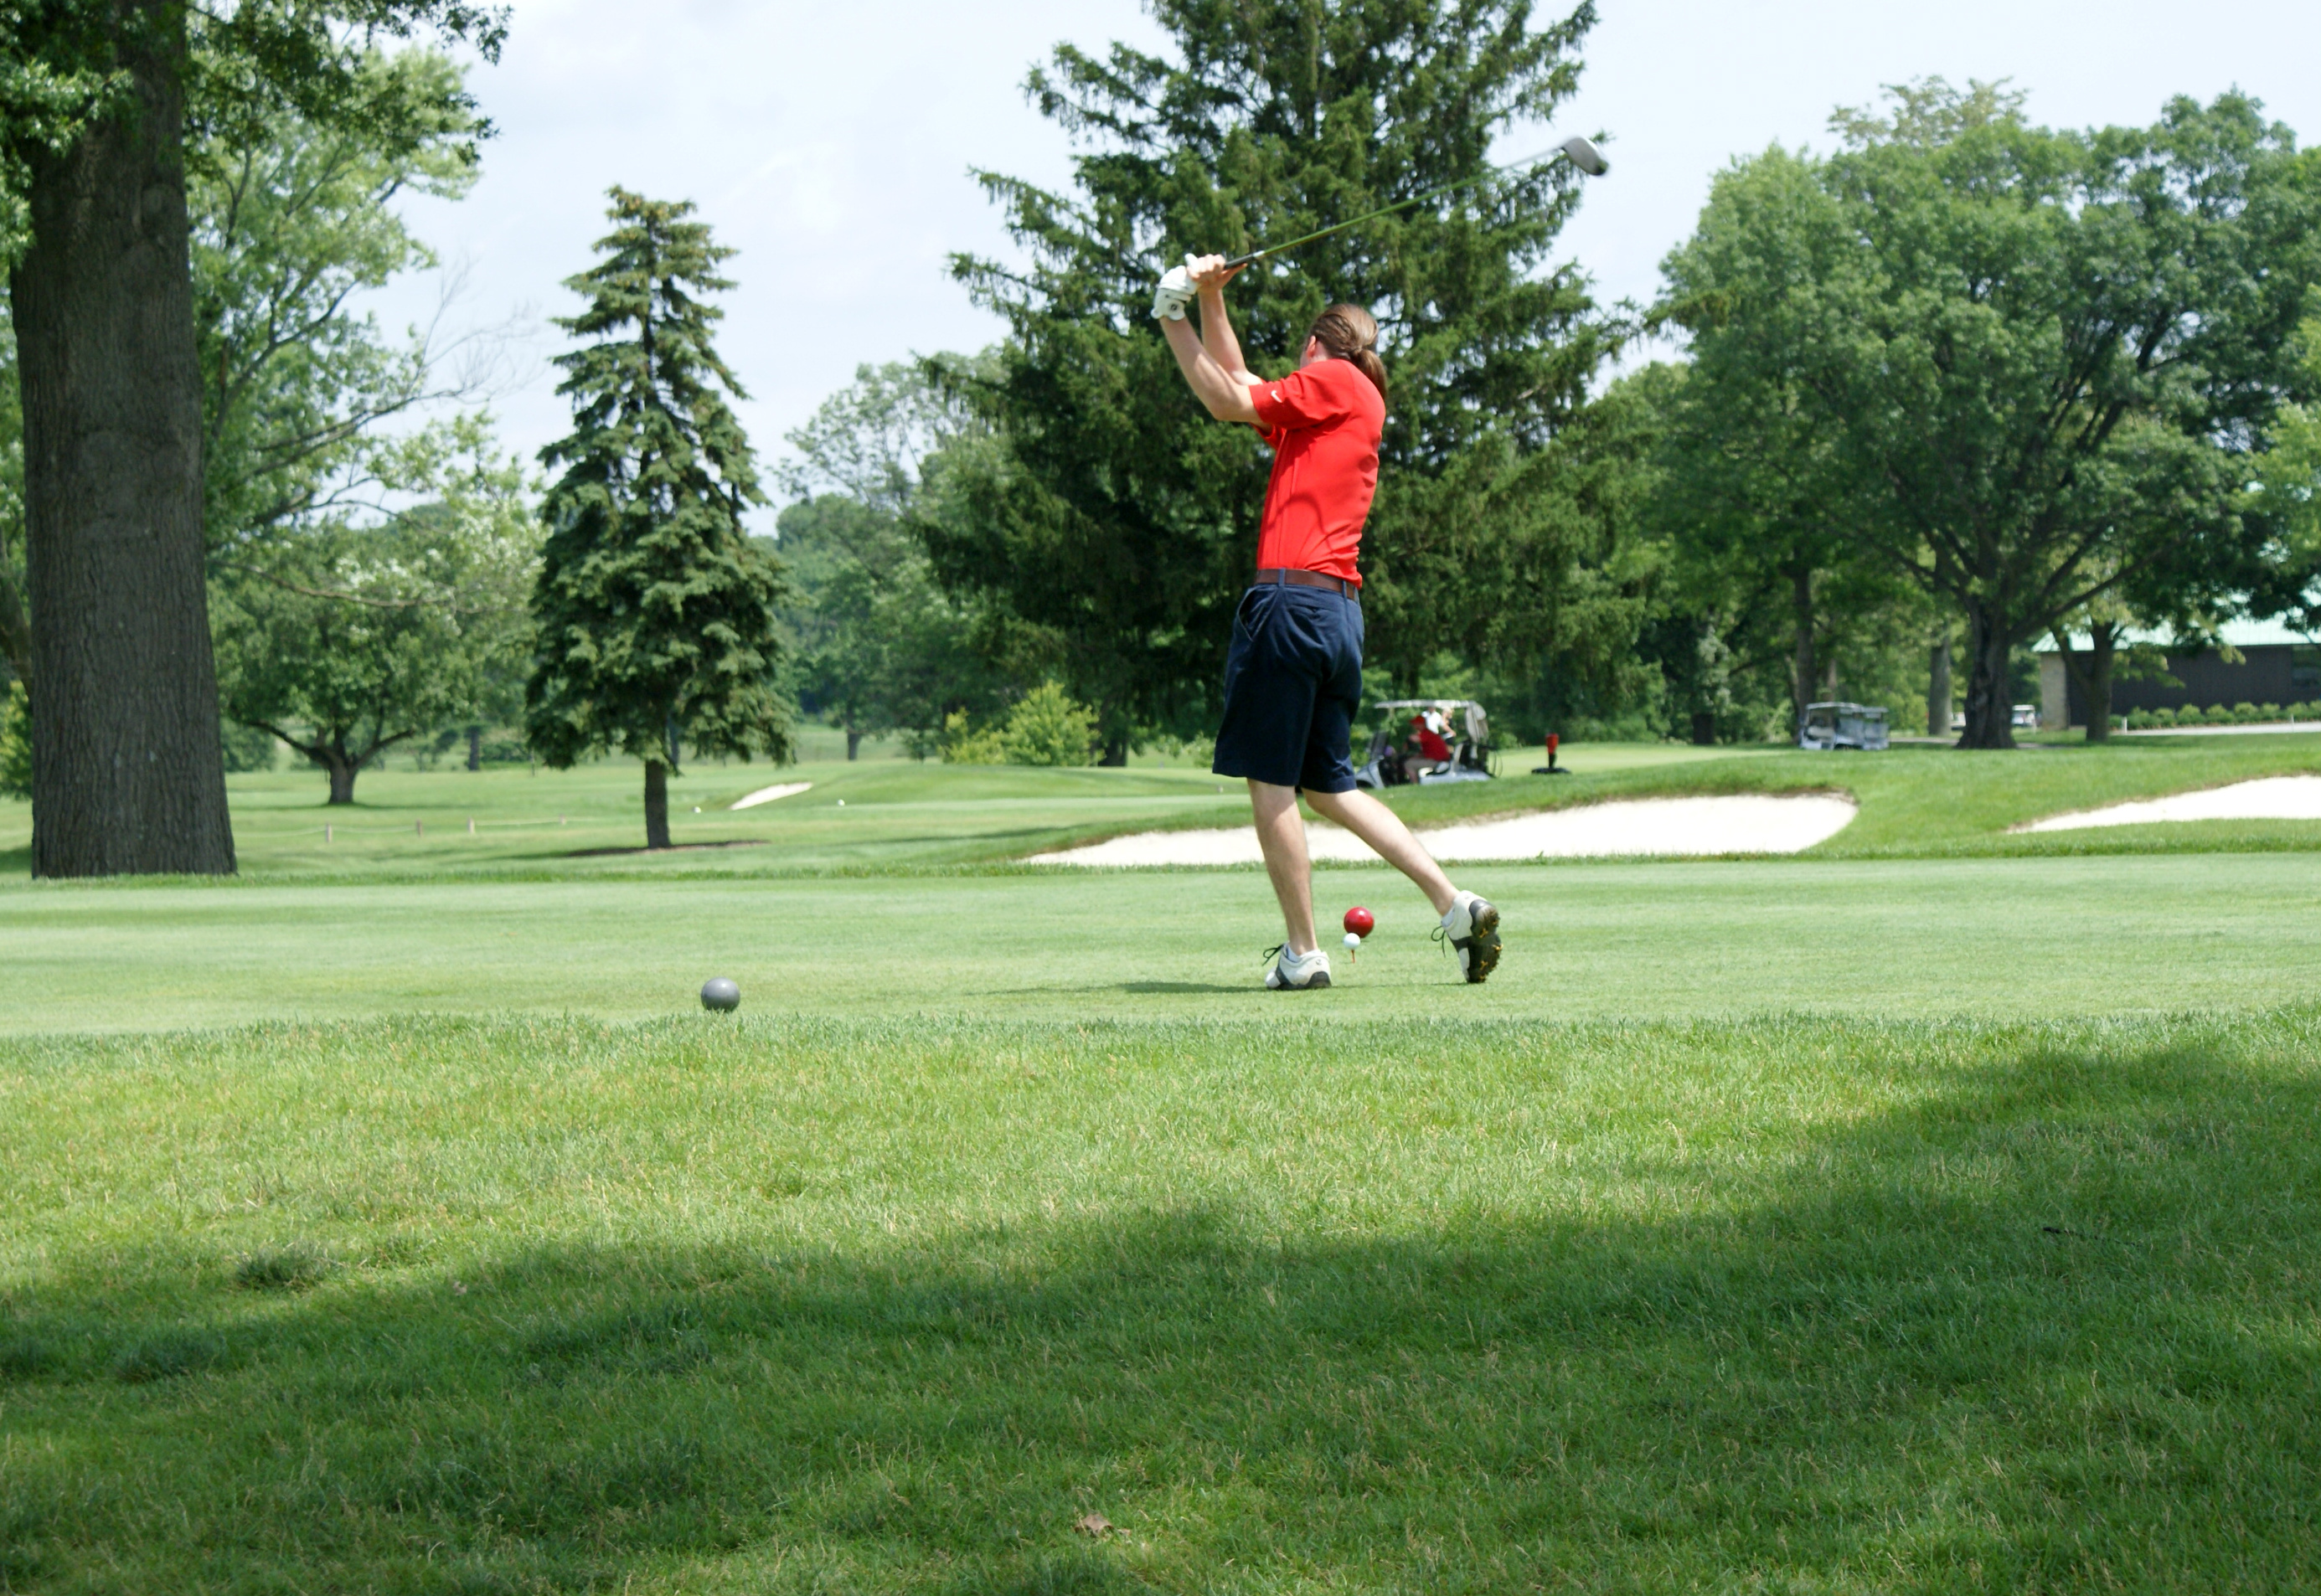 An alumnus of The Ohio State College of Veterinary Medicine takes a practice swing on June 22, 2015 at The Ohio State University Golf Club's Scarlet Course. Each year, members of Ohio State's College of Veterinary Medicine's Alumni Society hold an annual golf outing.